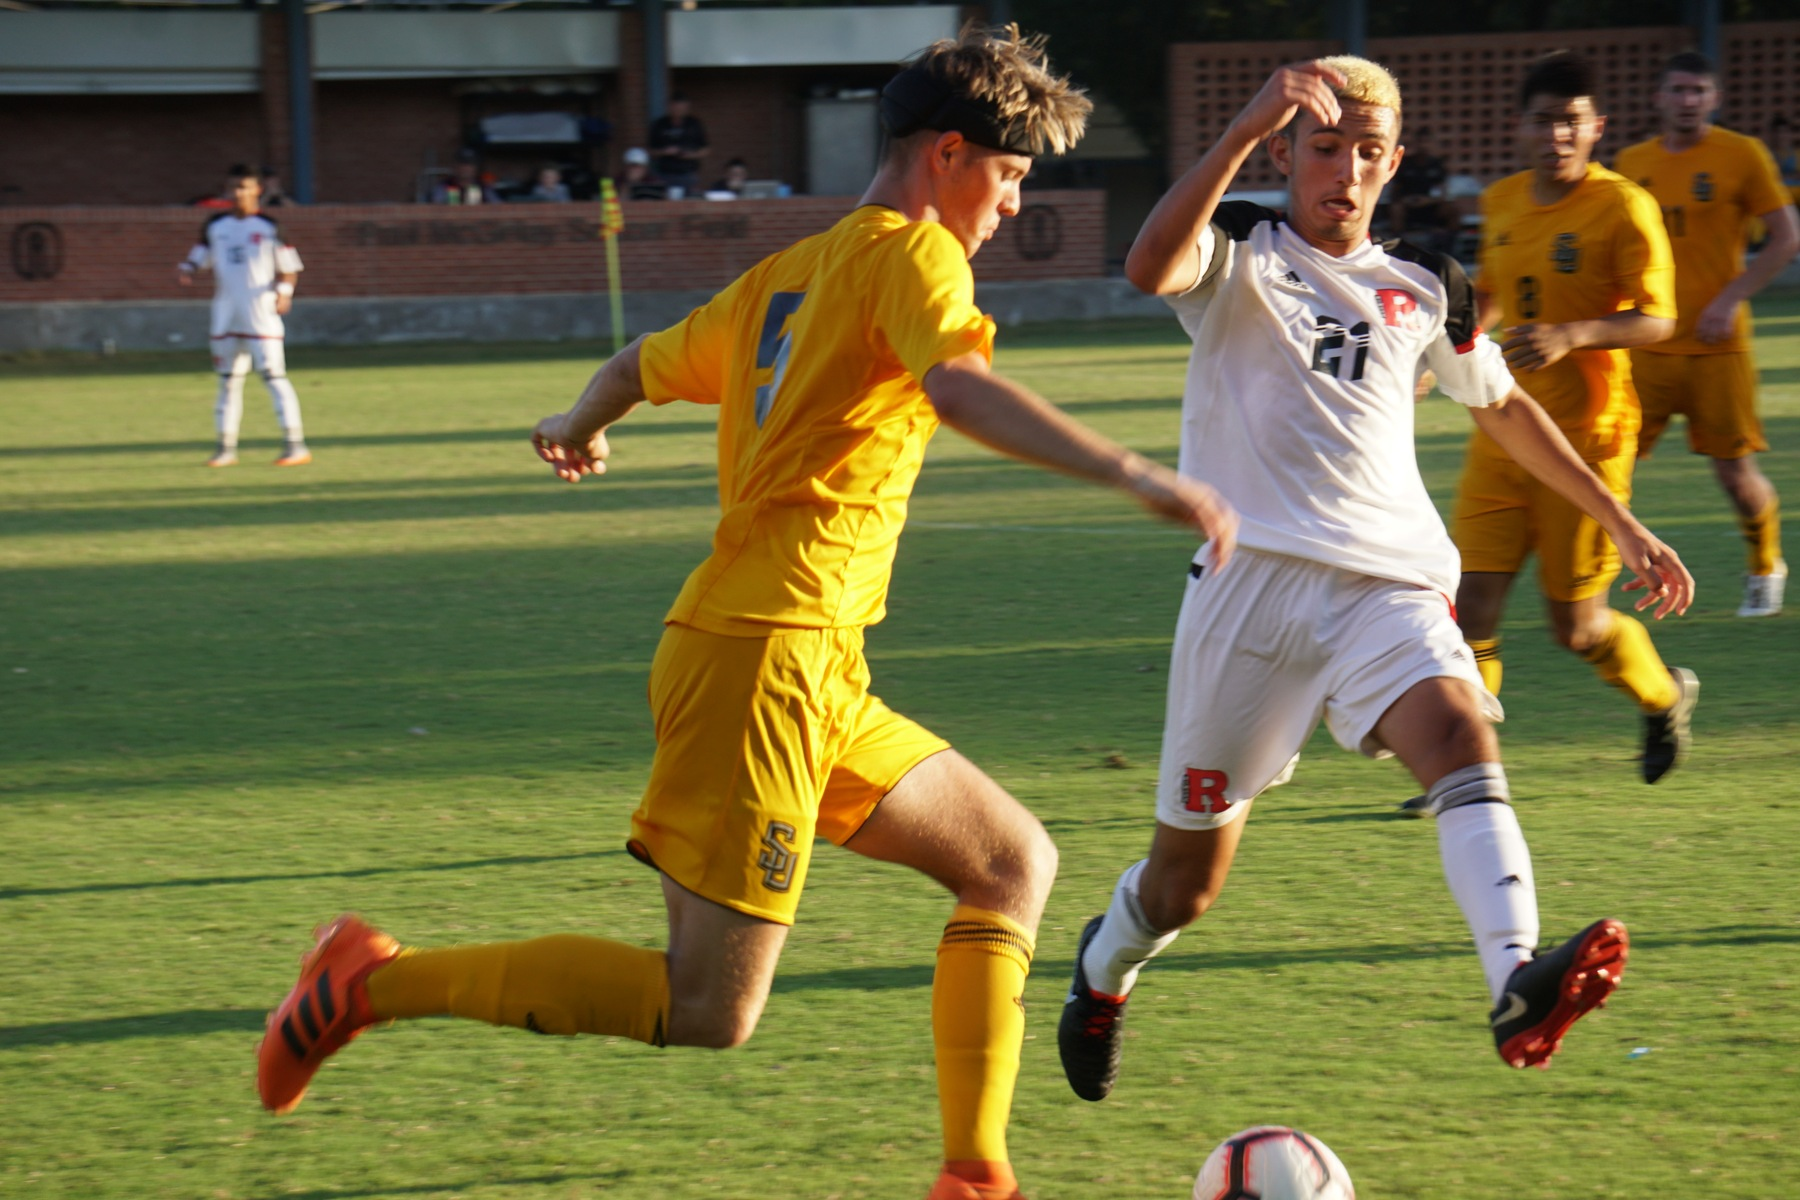 Dauth Named SCAC Men's Soccer Player of the Week